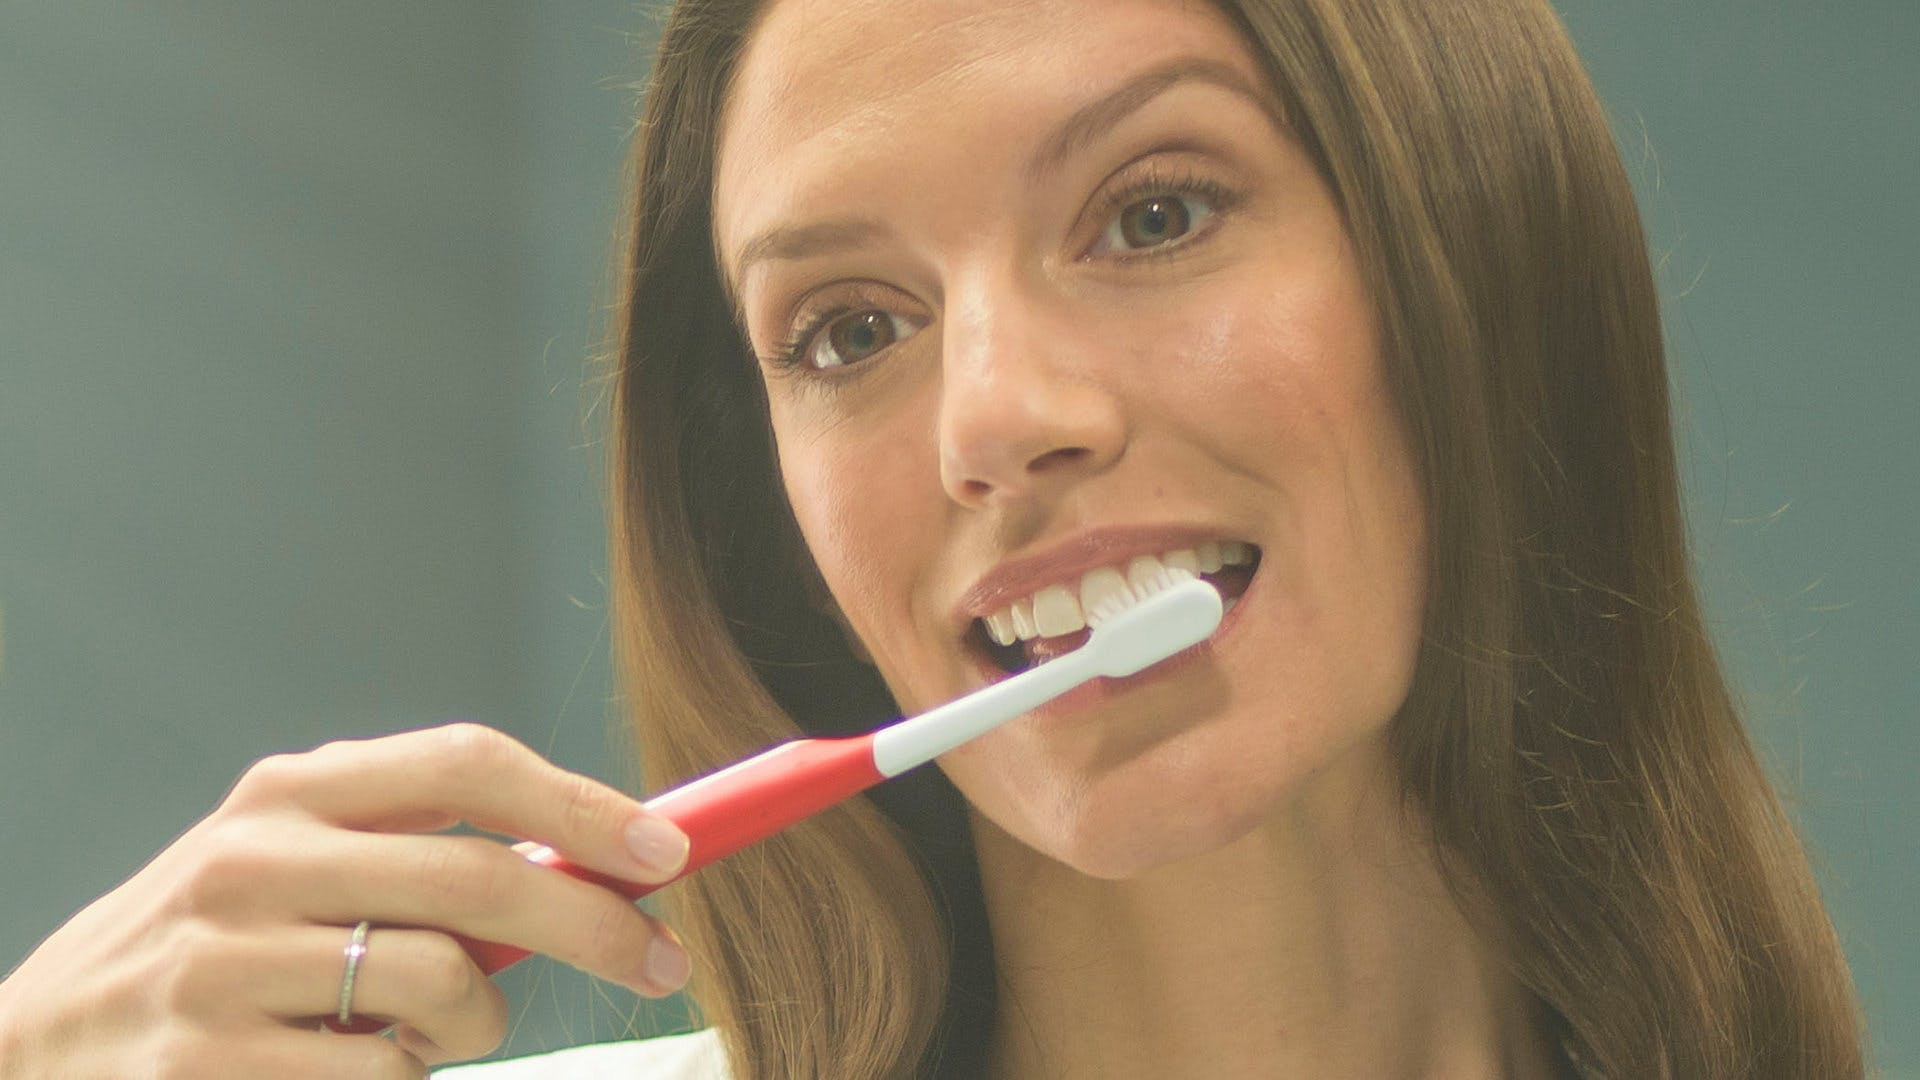 Woman looking into sink holding a toothbrush